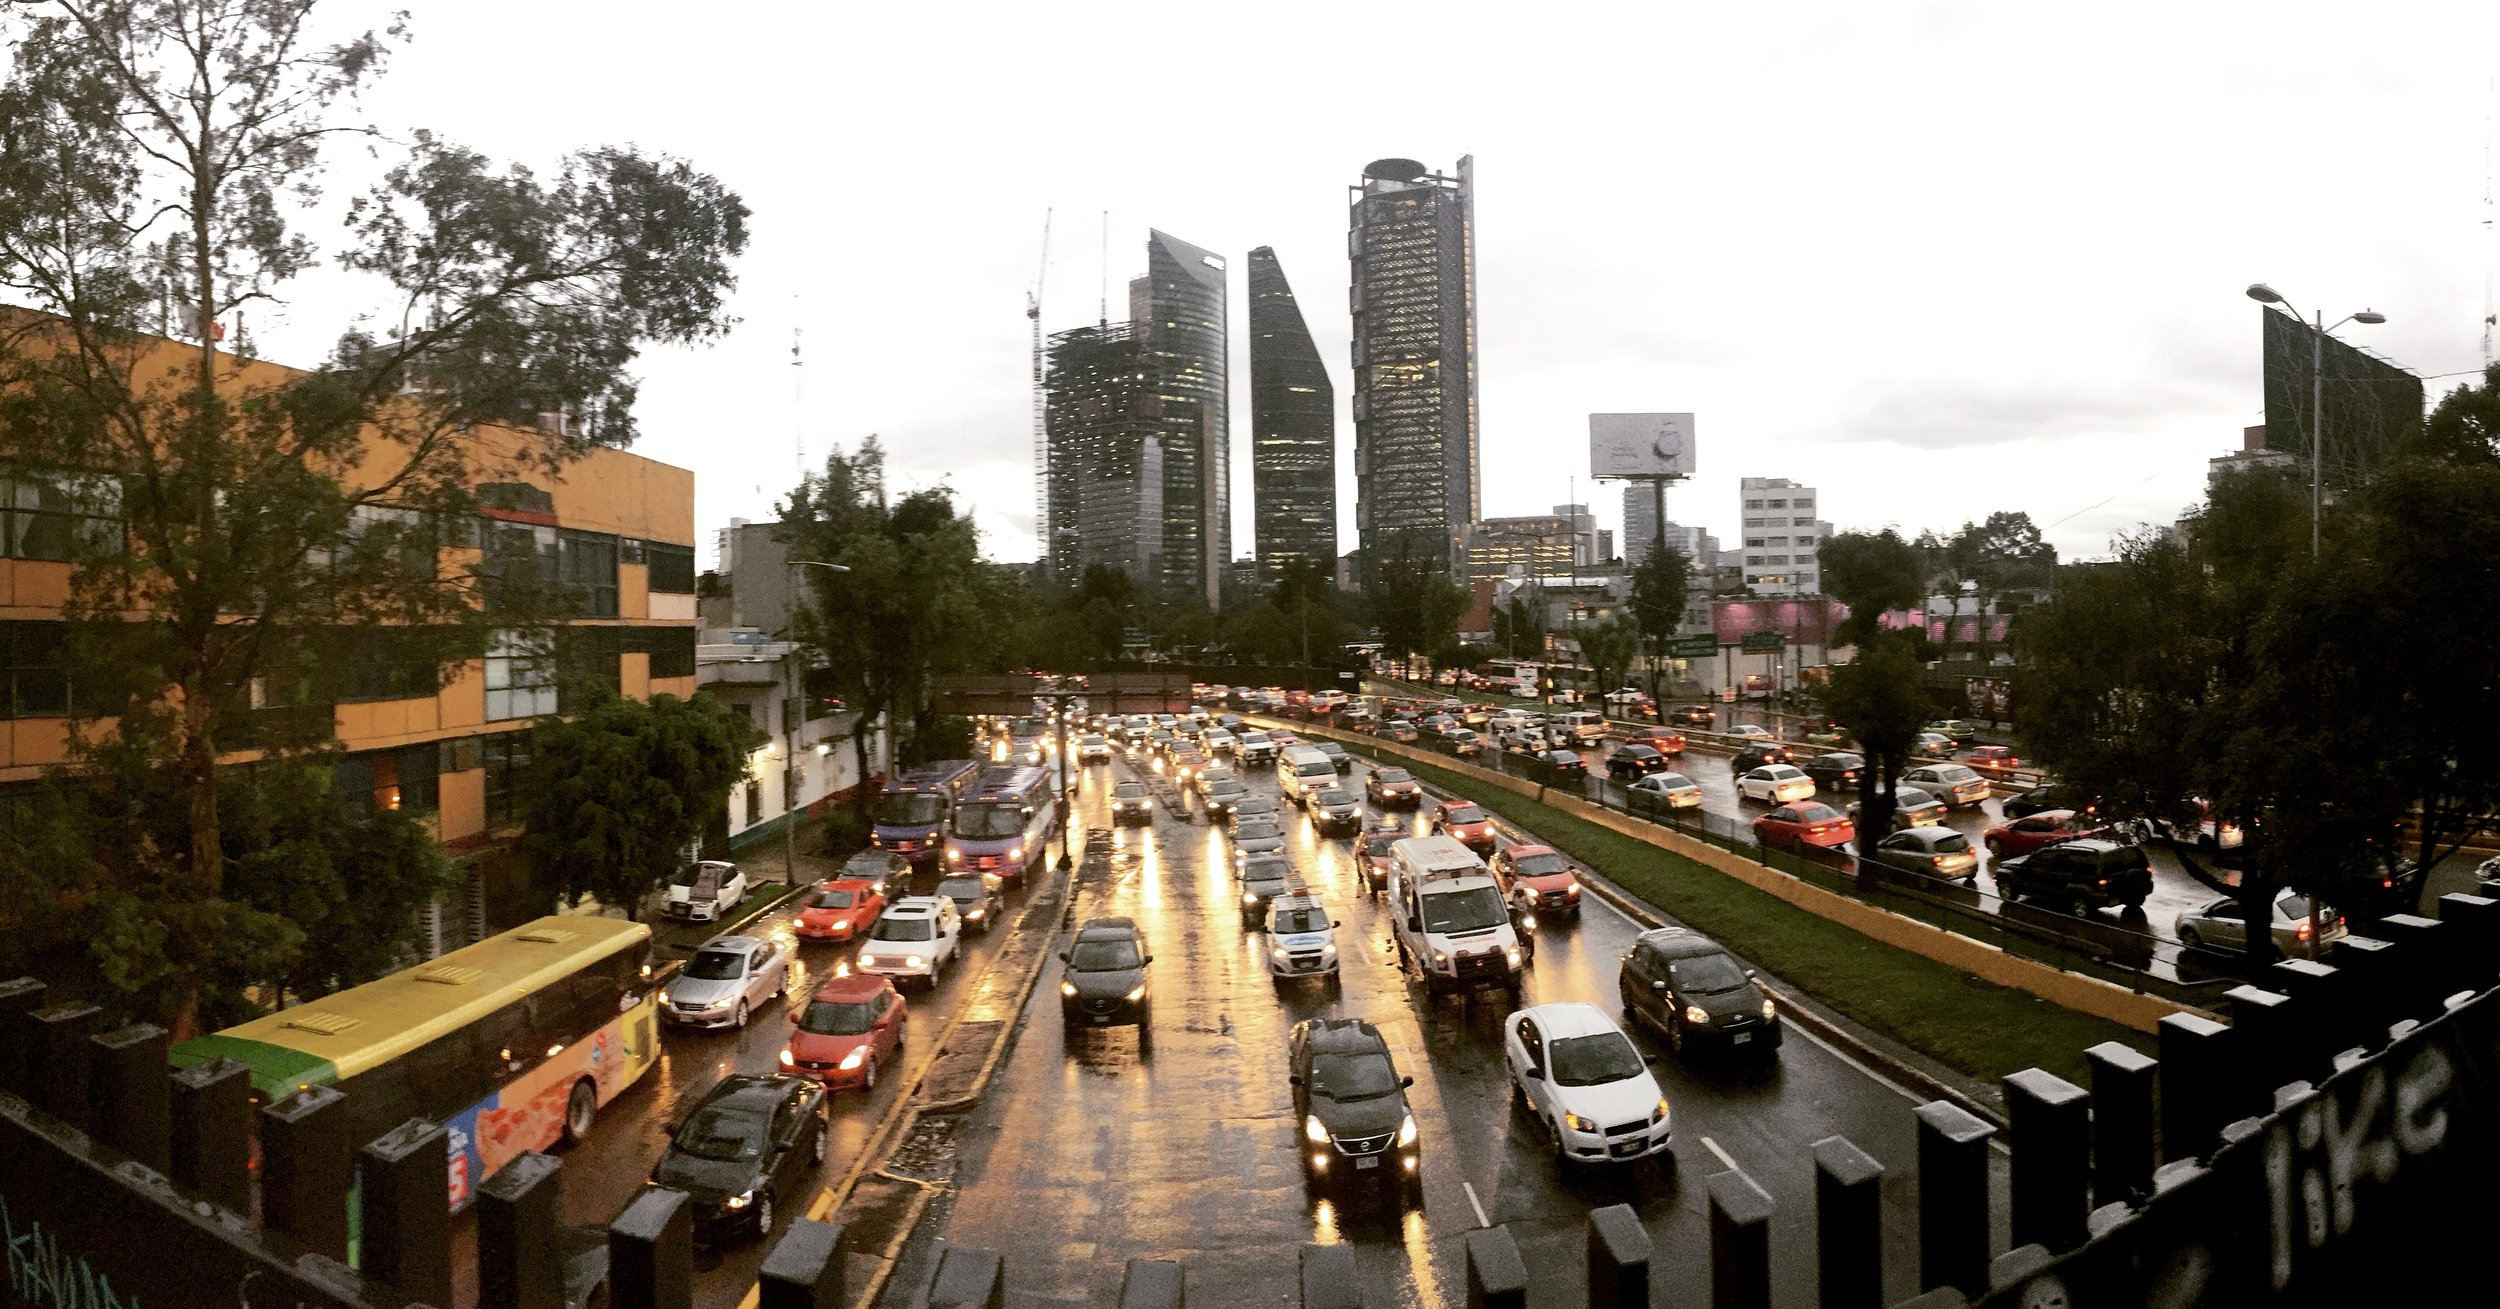 How can we create more inclusive, thriving cities? -